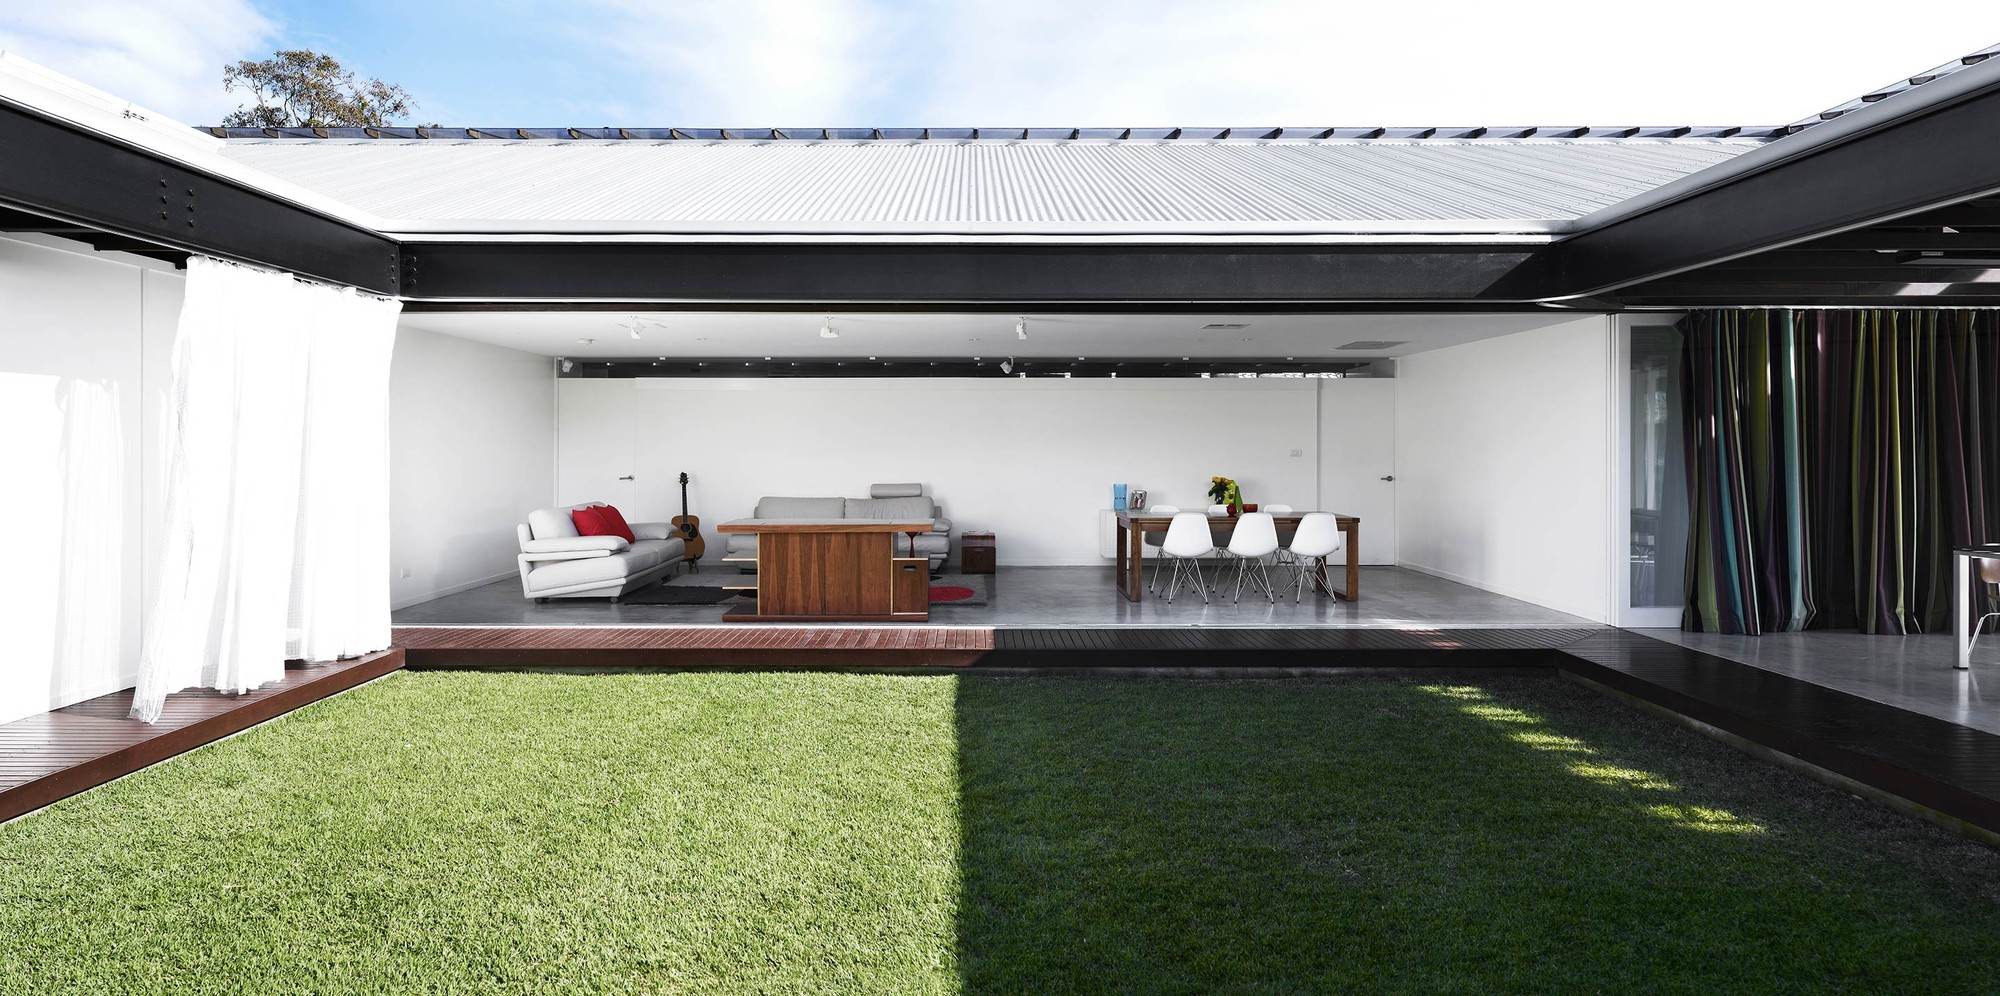 Bilsey Place House / James Russell Architect, © Toby Scott